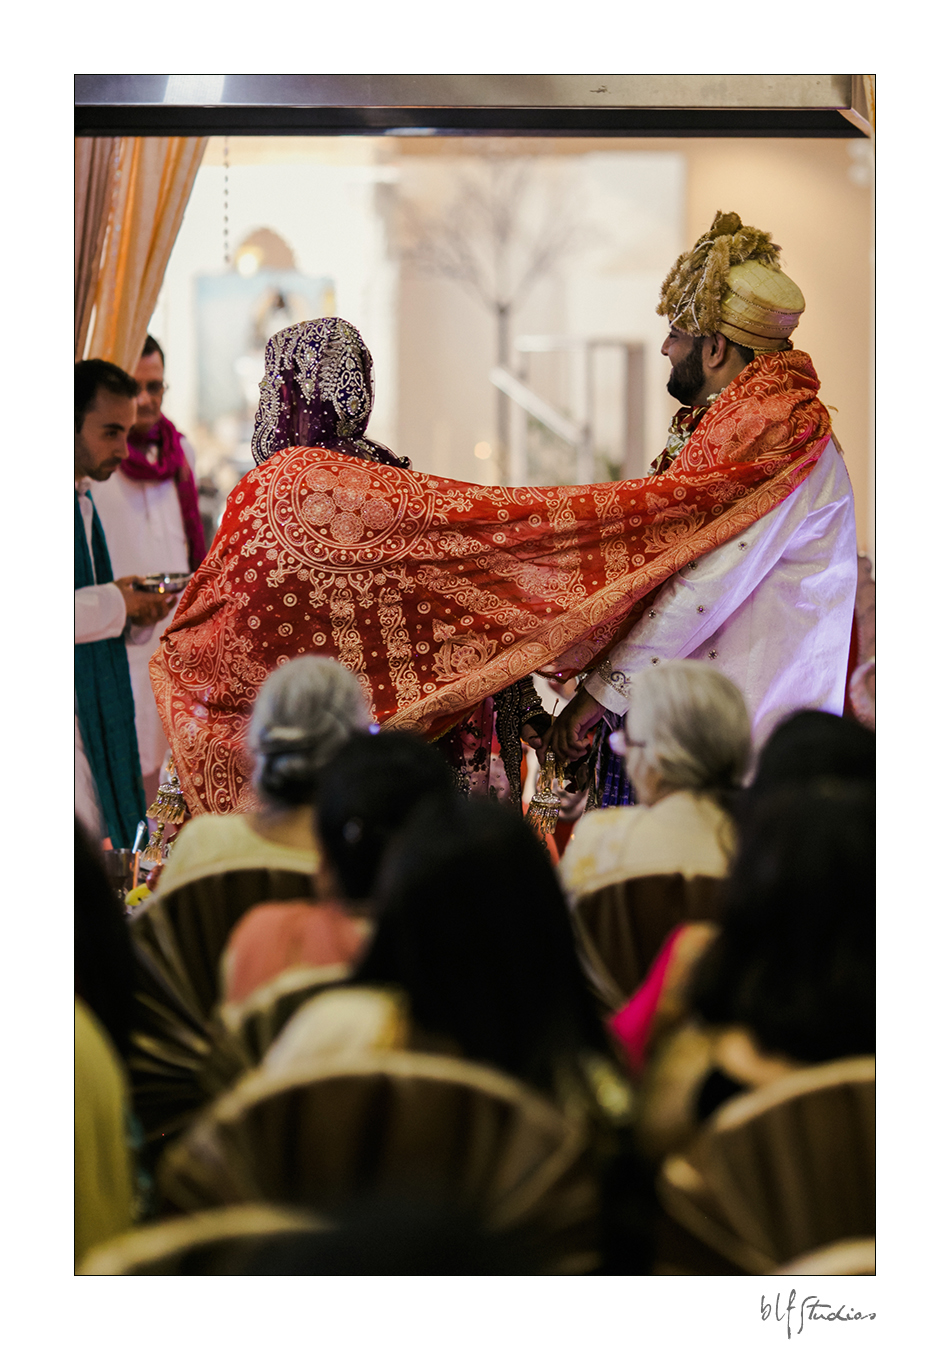 0031blfstudios-winnipeg-hindu-wedding-photos.jpg